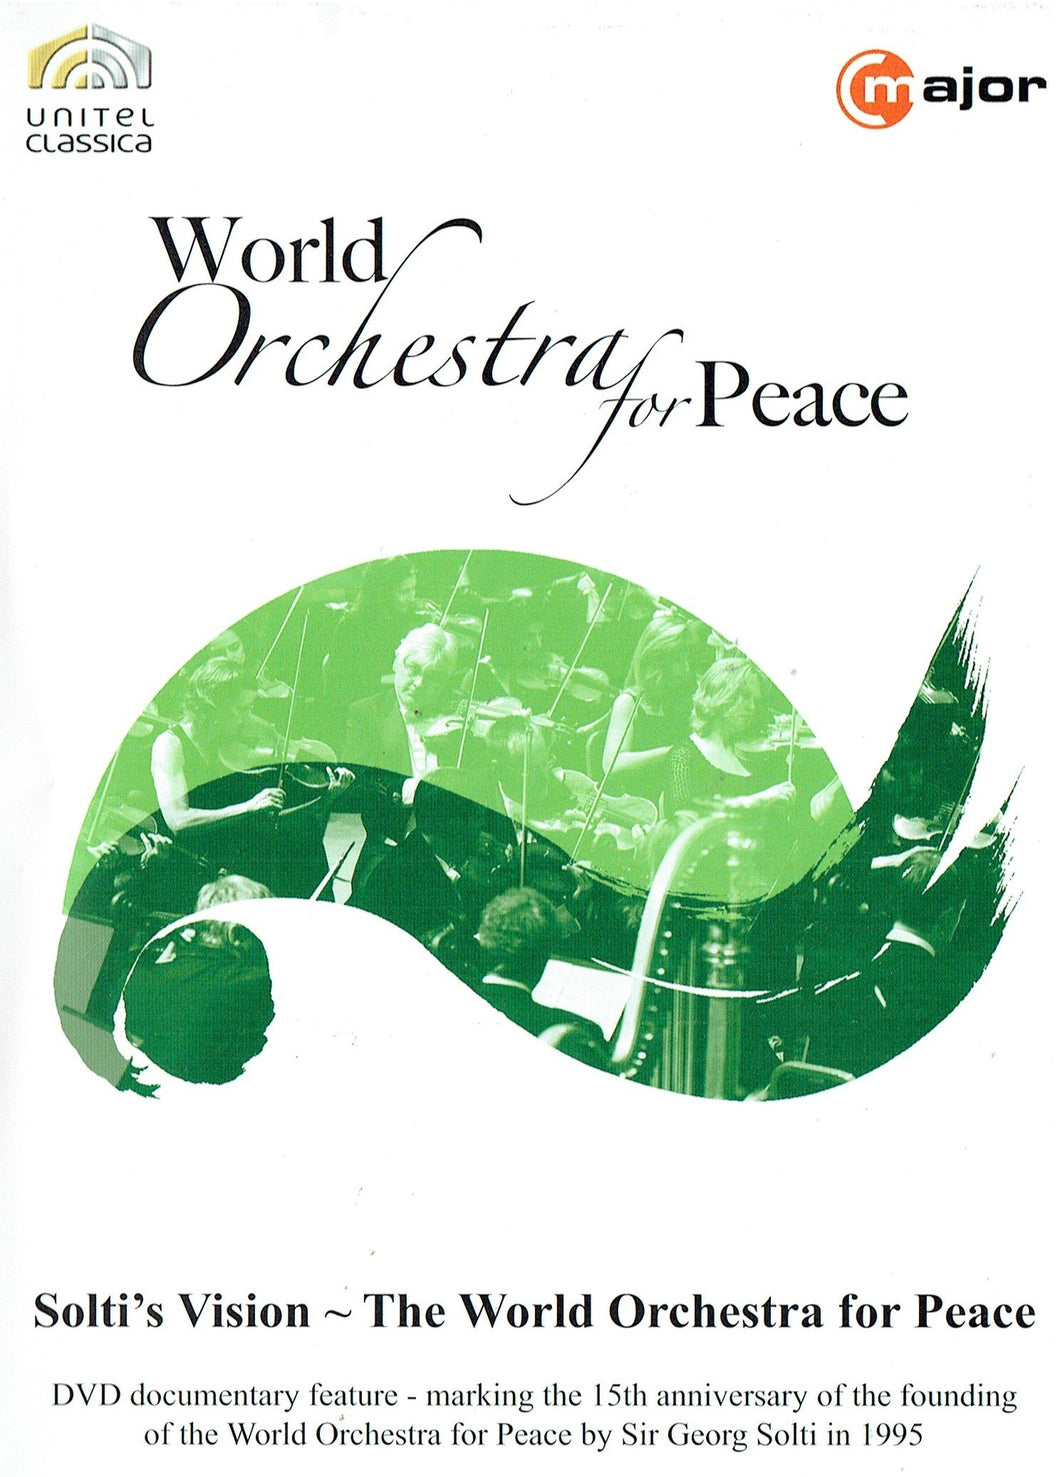 World Orchestra for Peace - 15th Anniversary Documentary 2010: Solti's Vision